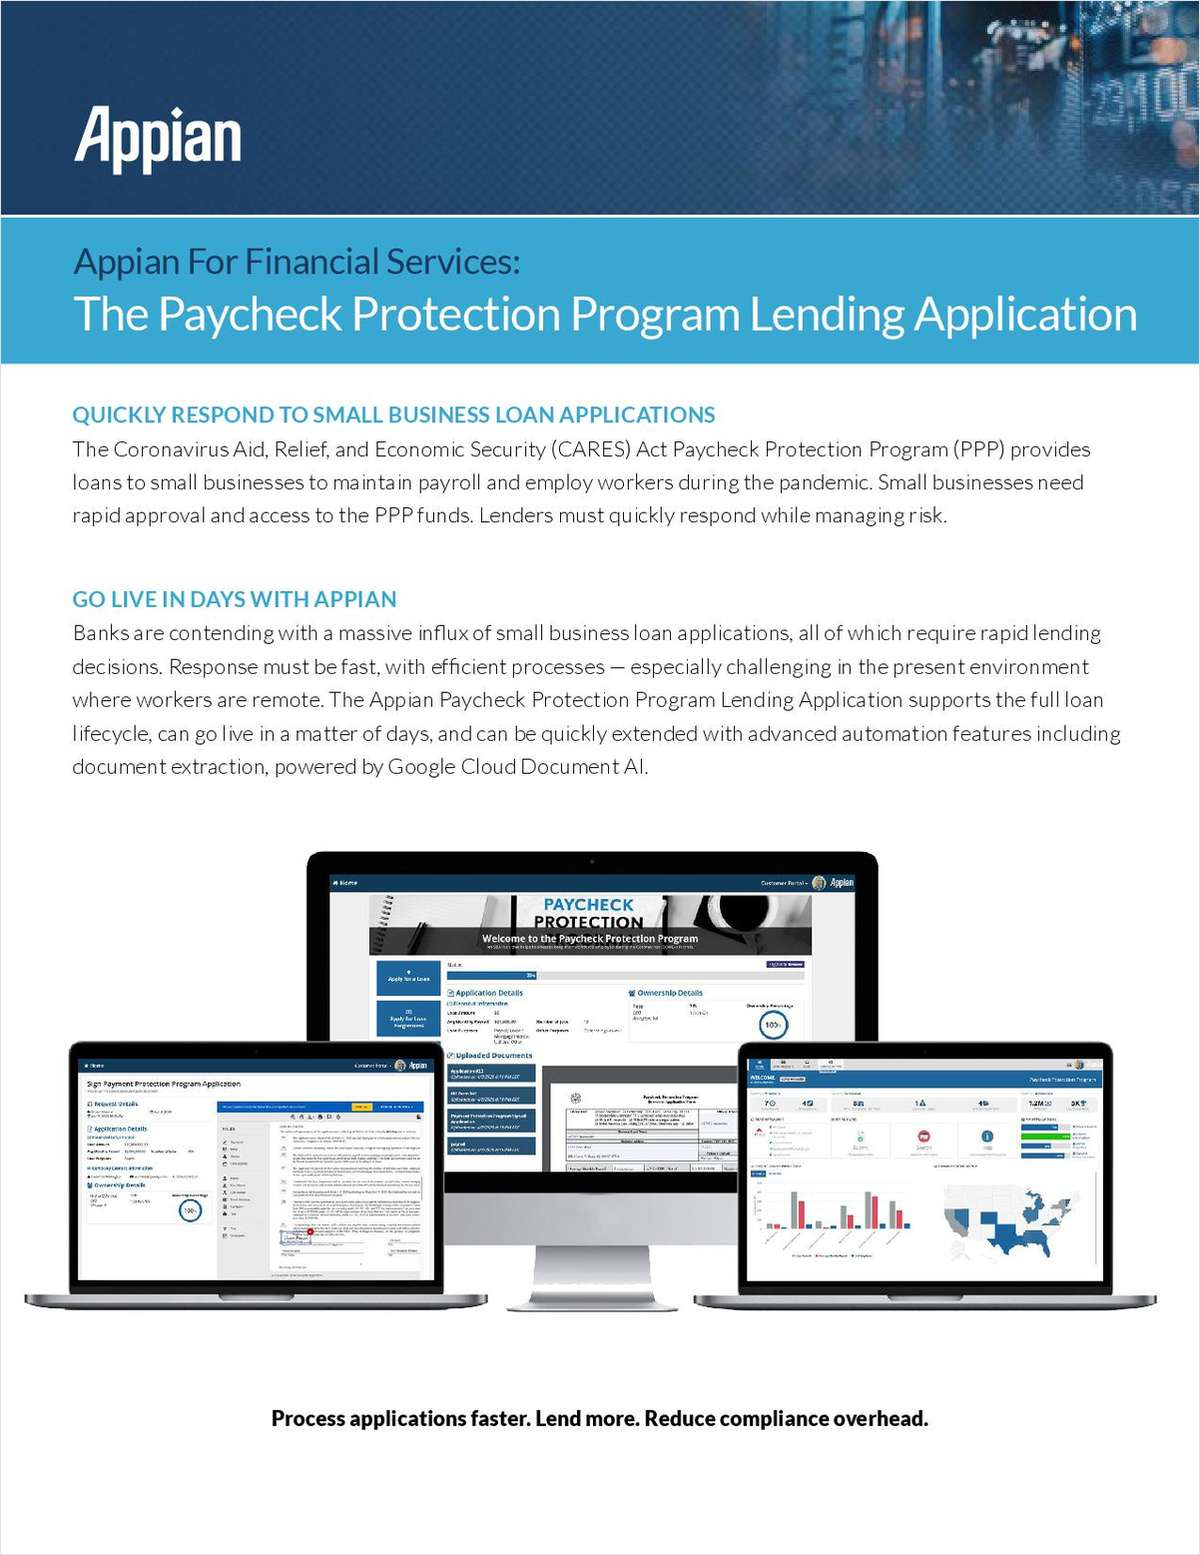 Appian For Financial Services: The Paycheck Protection Program Lending Application